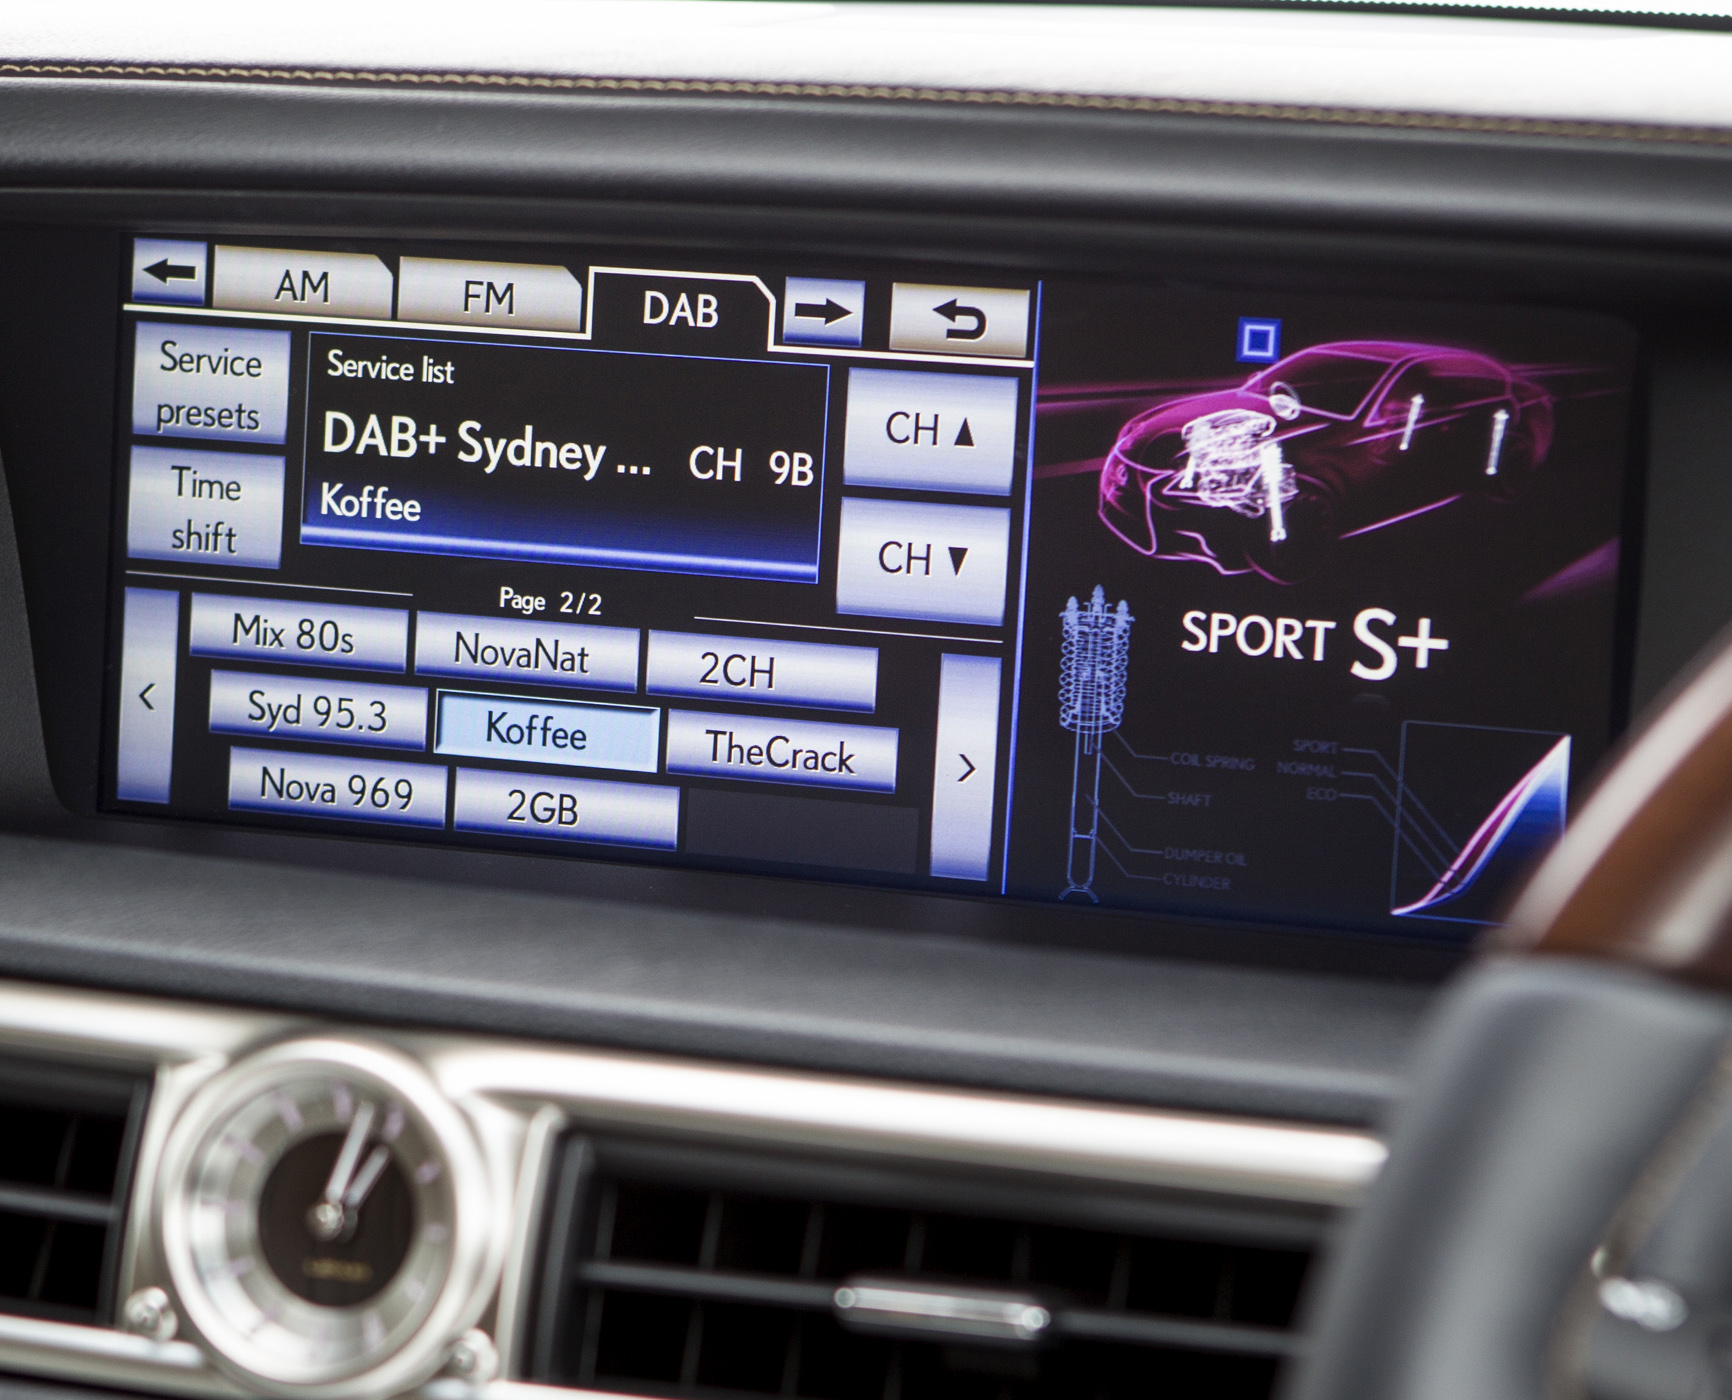 Digital radio in the car: All you need to know | CarAdvice